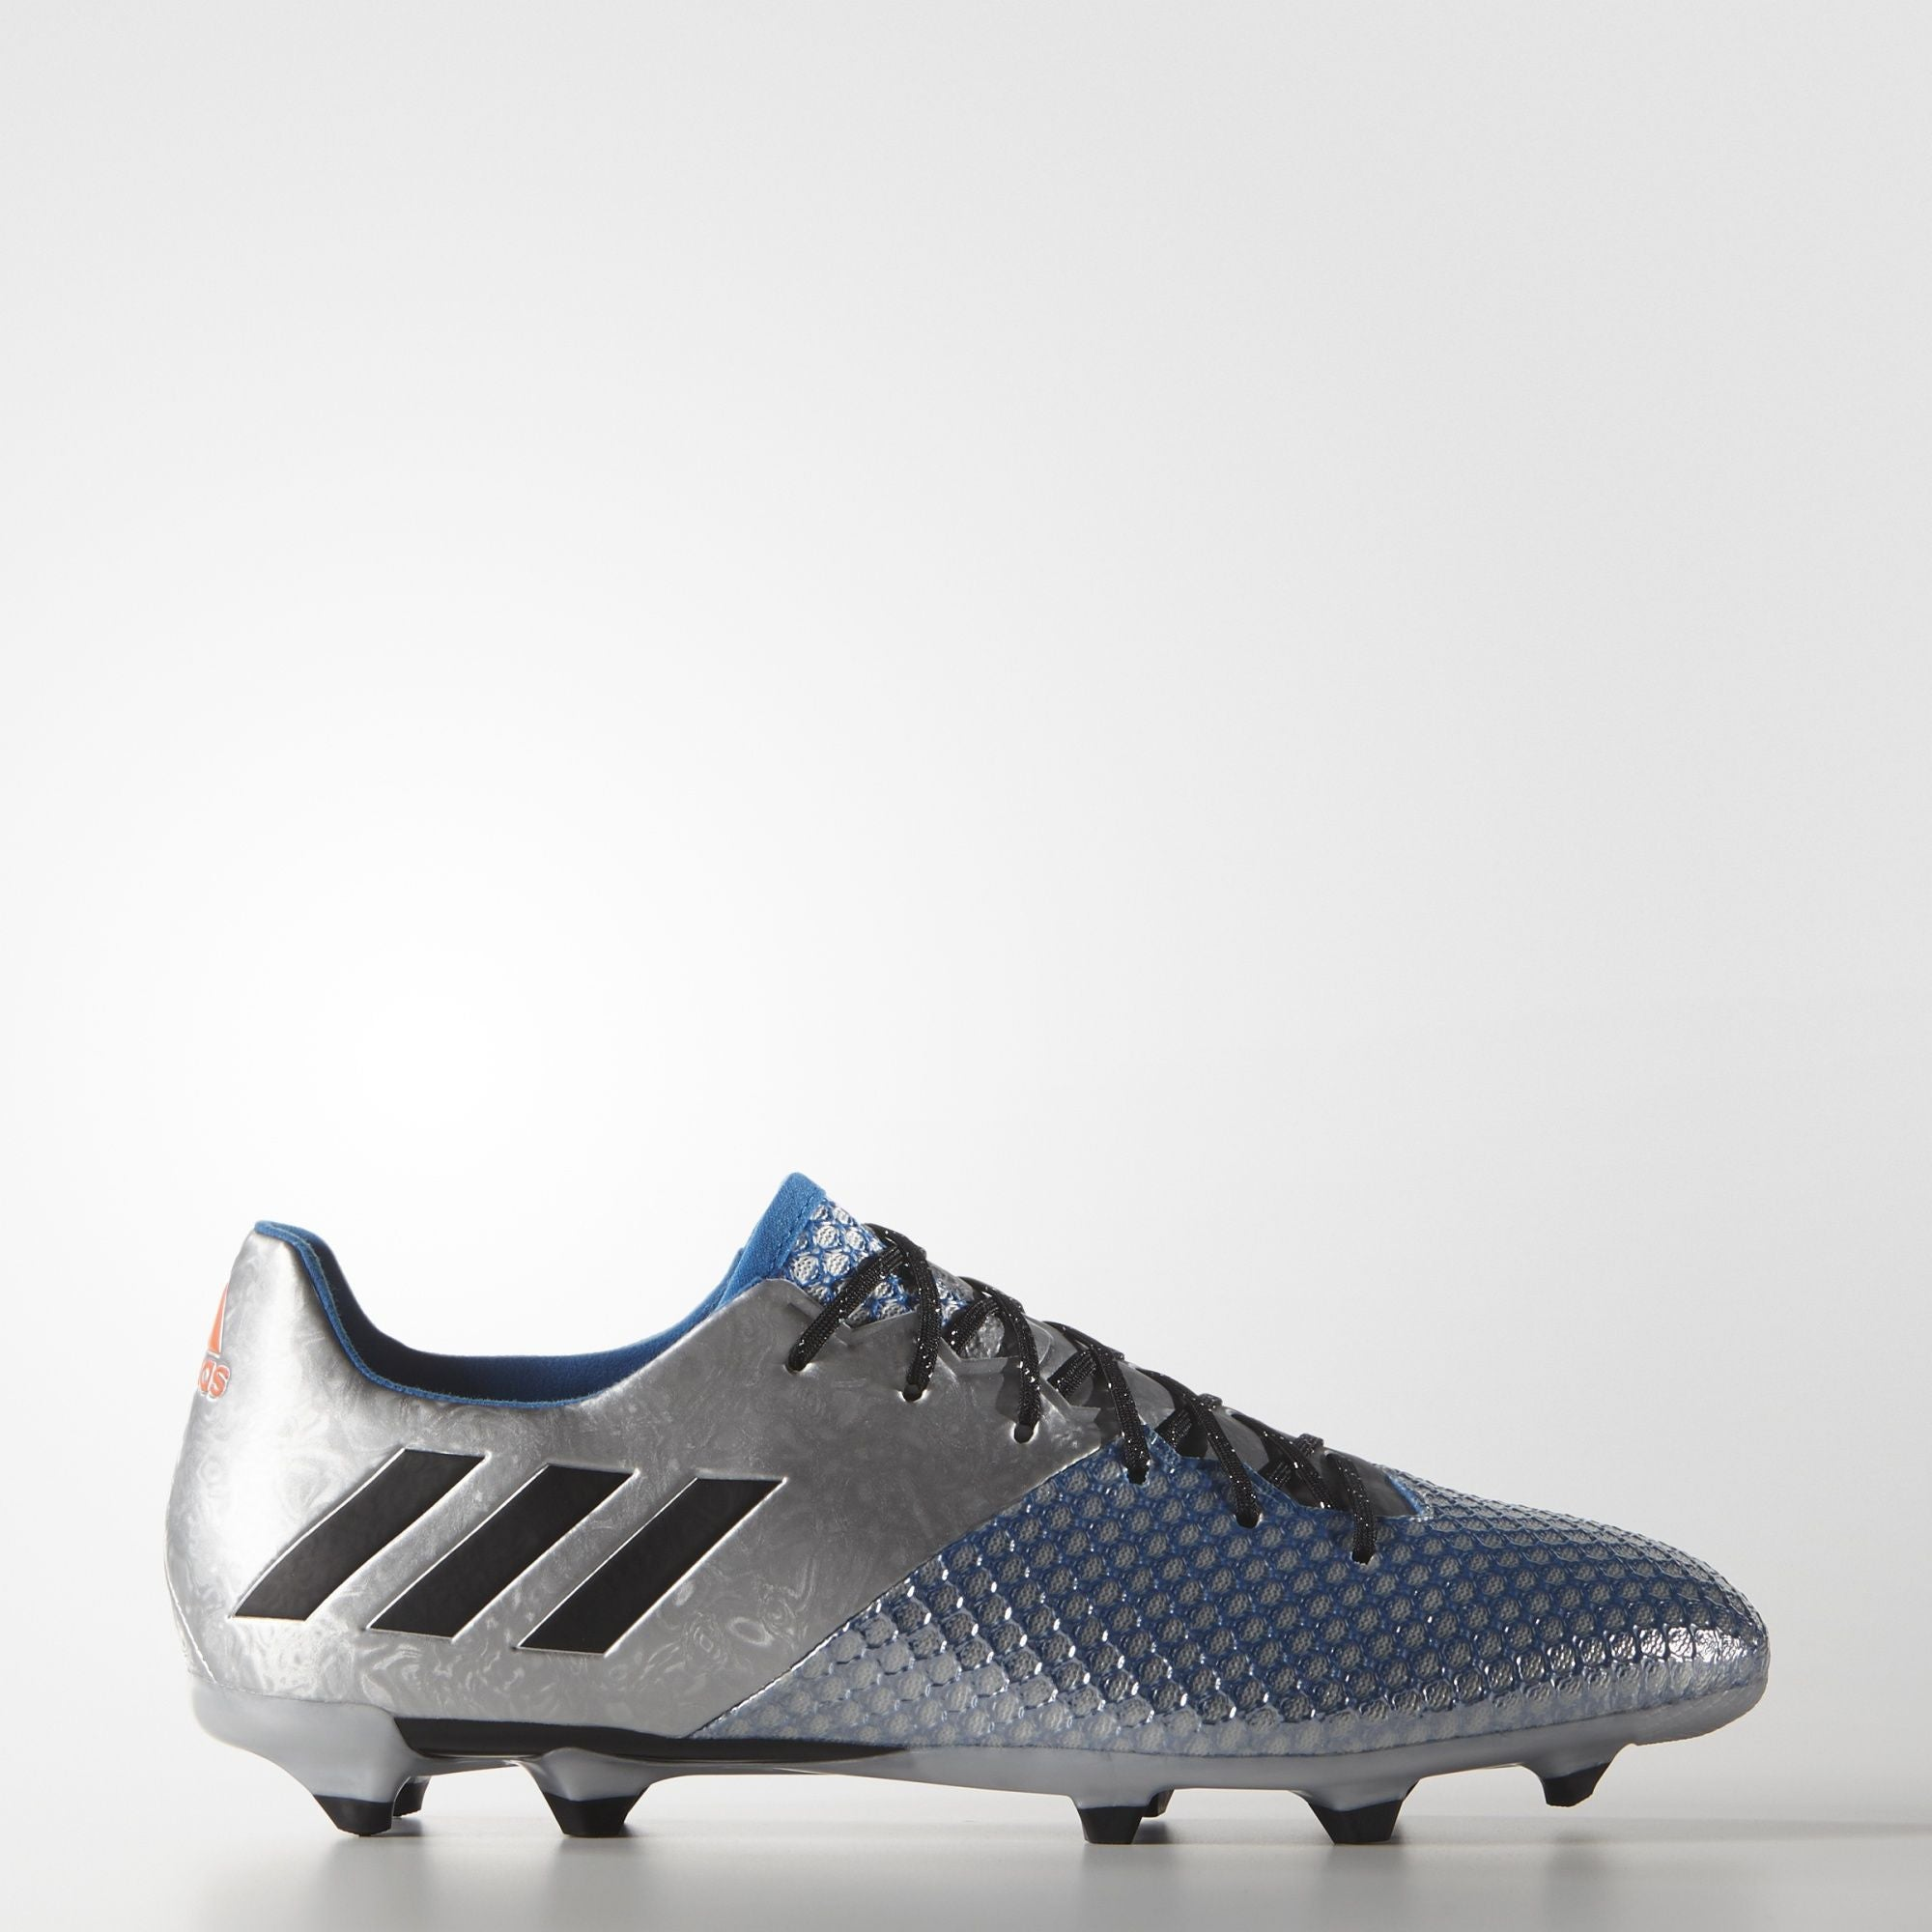 new arrival 07e1e 3b176 Men's adidas Messi 16.2 Firm Ground Cleats